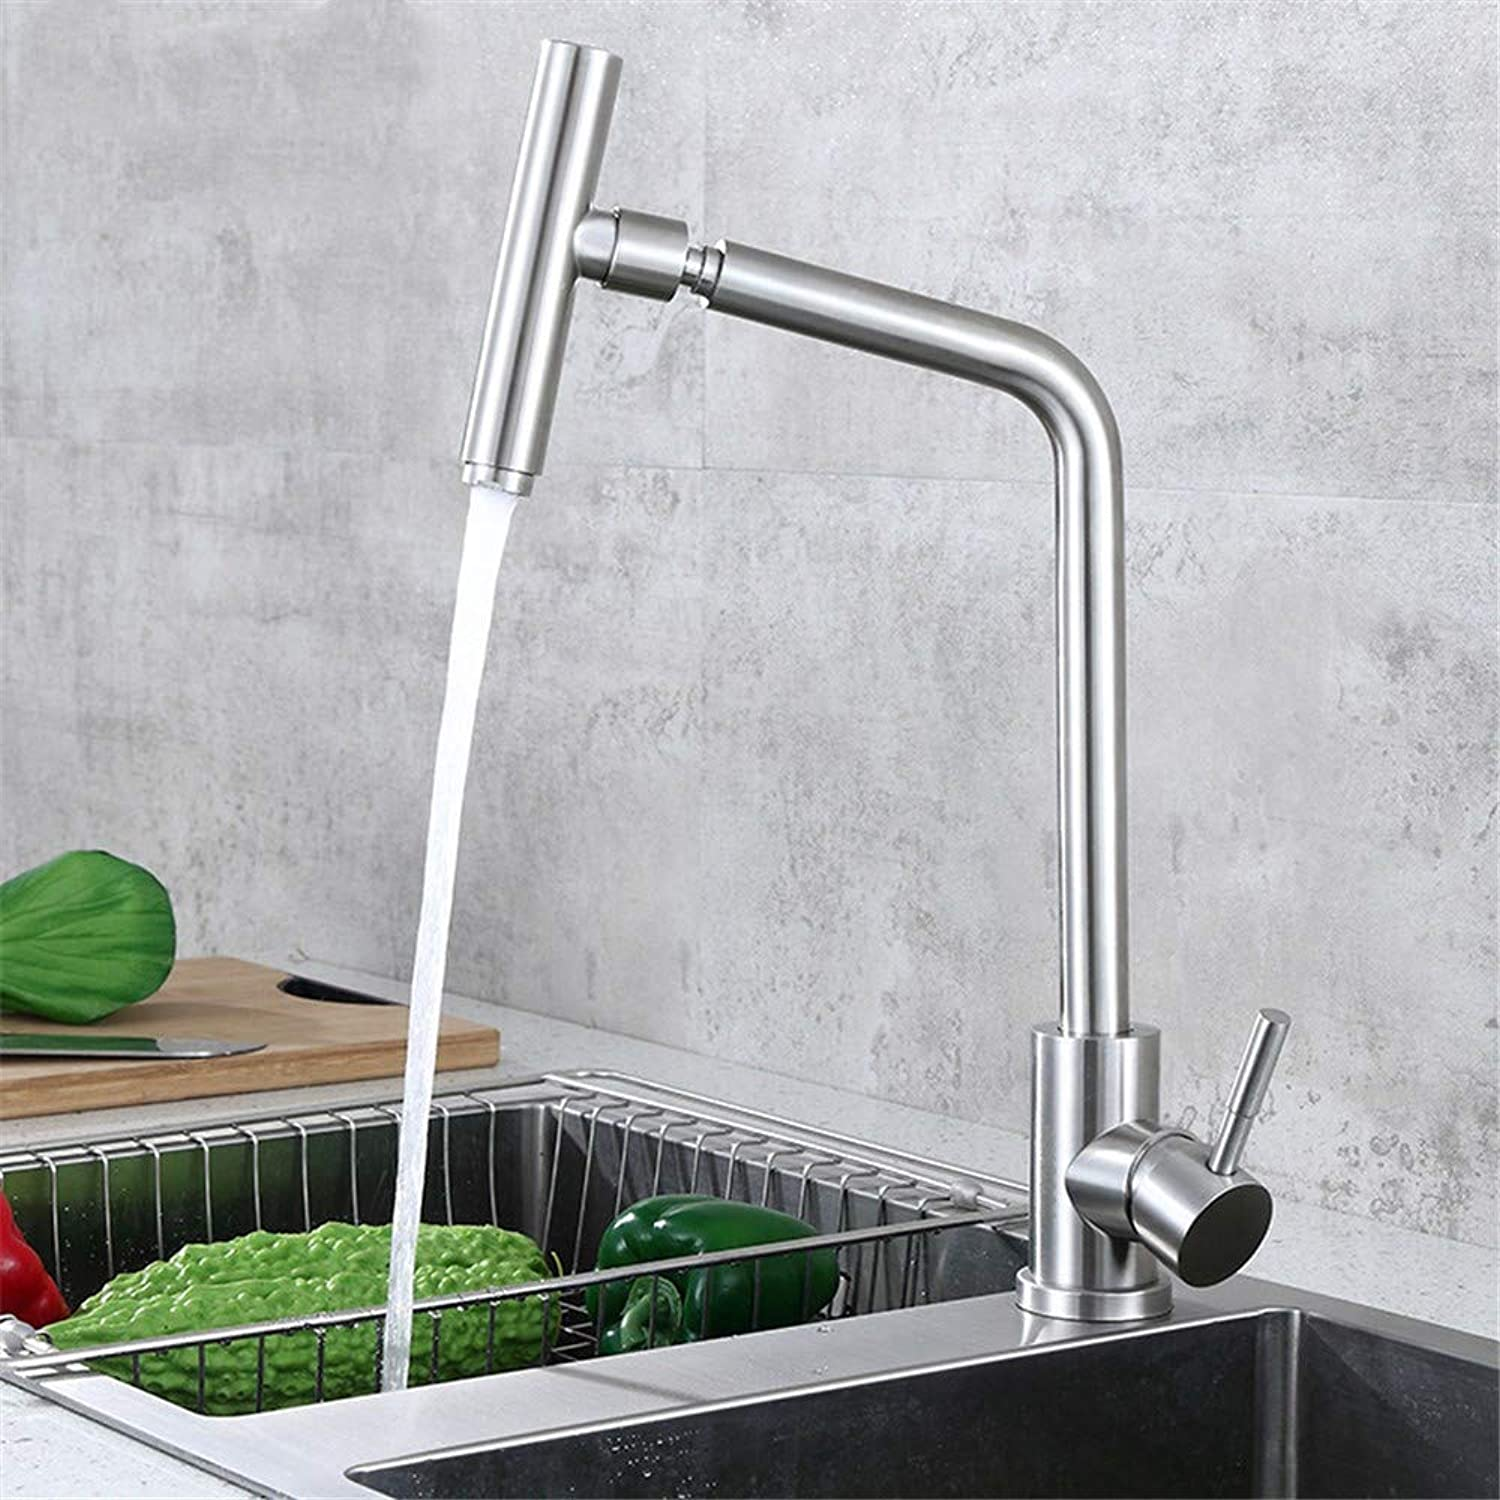 Decorry redating Microphone Section 304 Stainless Steel Kitchen Sink Washing Vegetables Basin Faucet Hot and Cold Kitchen FaucetS65-UE6589321557